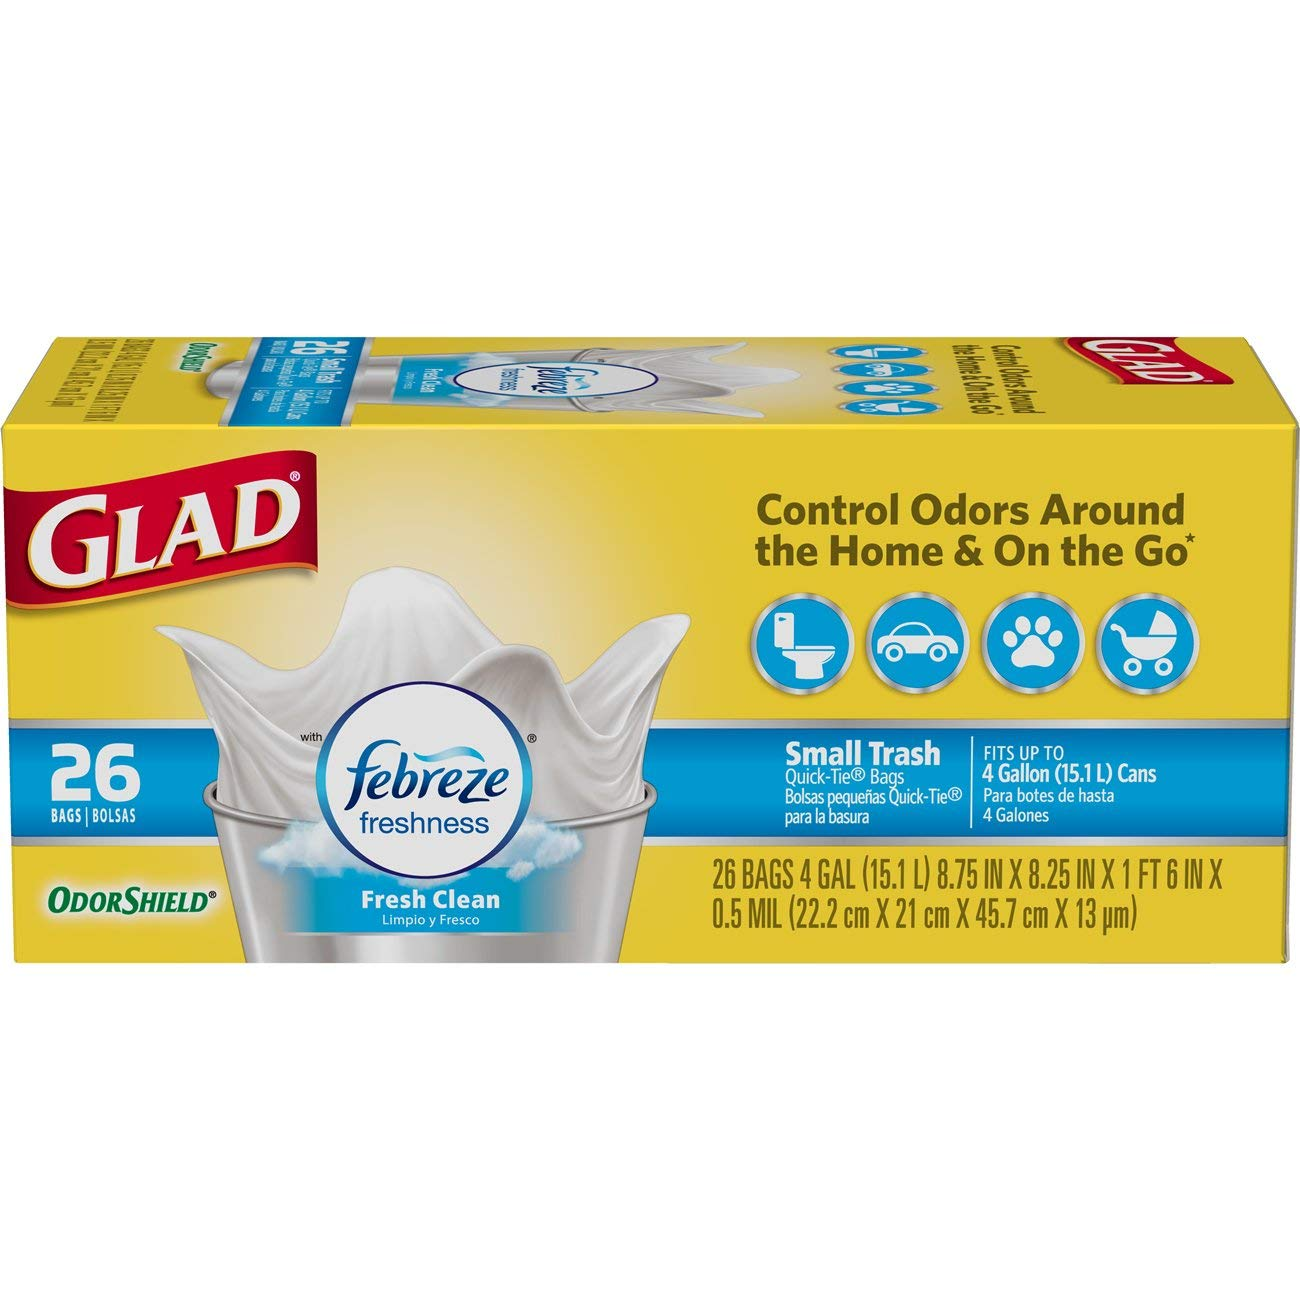 Glad® Small Trash Bags - OdorShield® 4 Gallon White Trash Bag, Febreze Fresh Clean - 26 Count